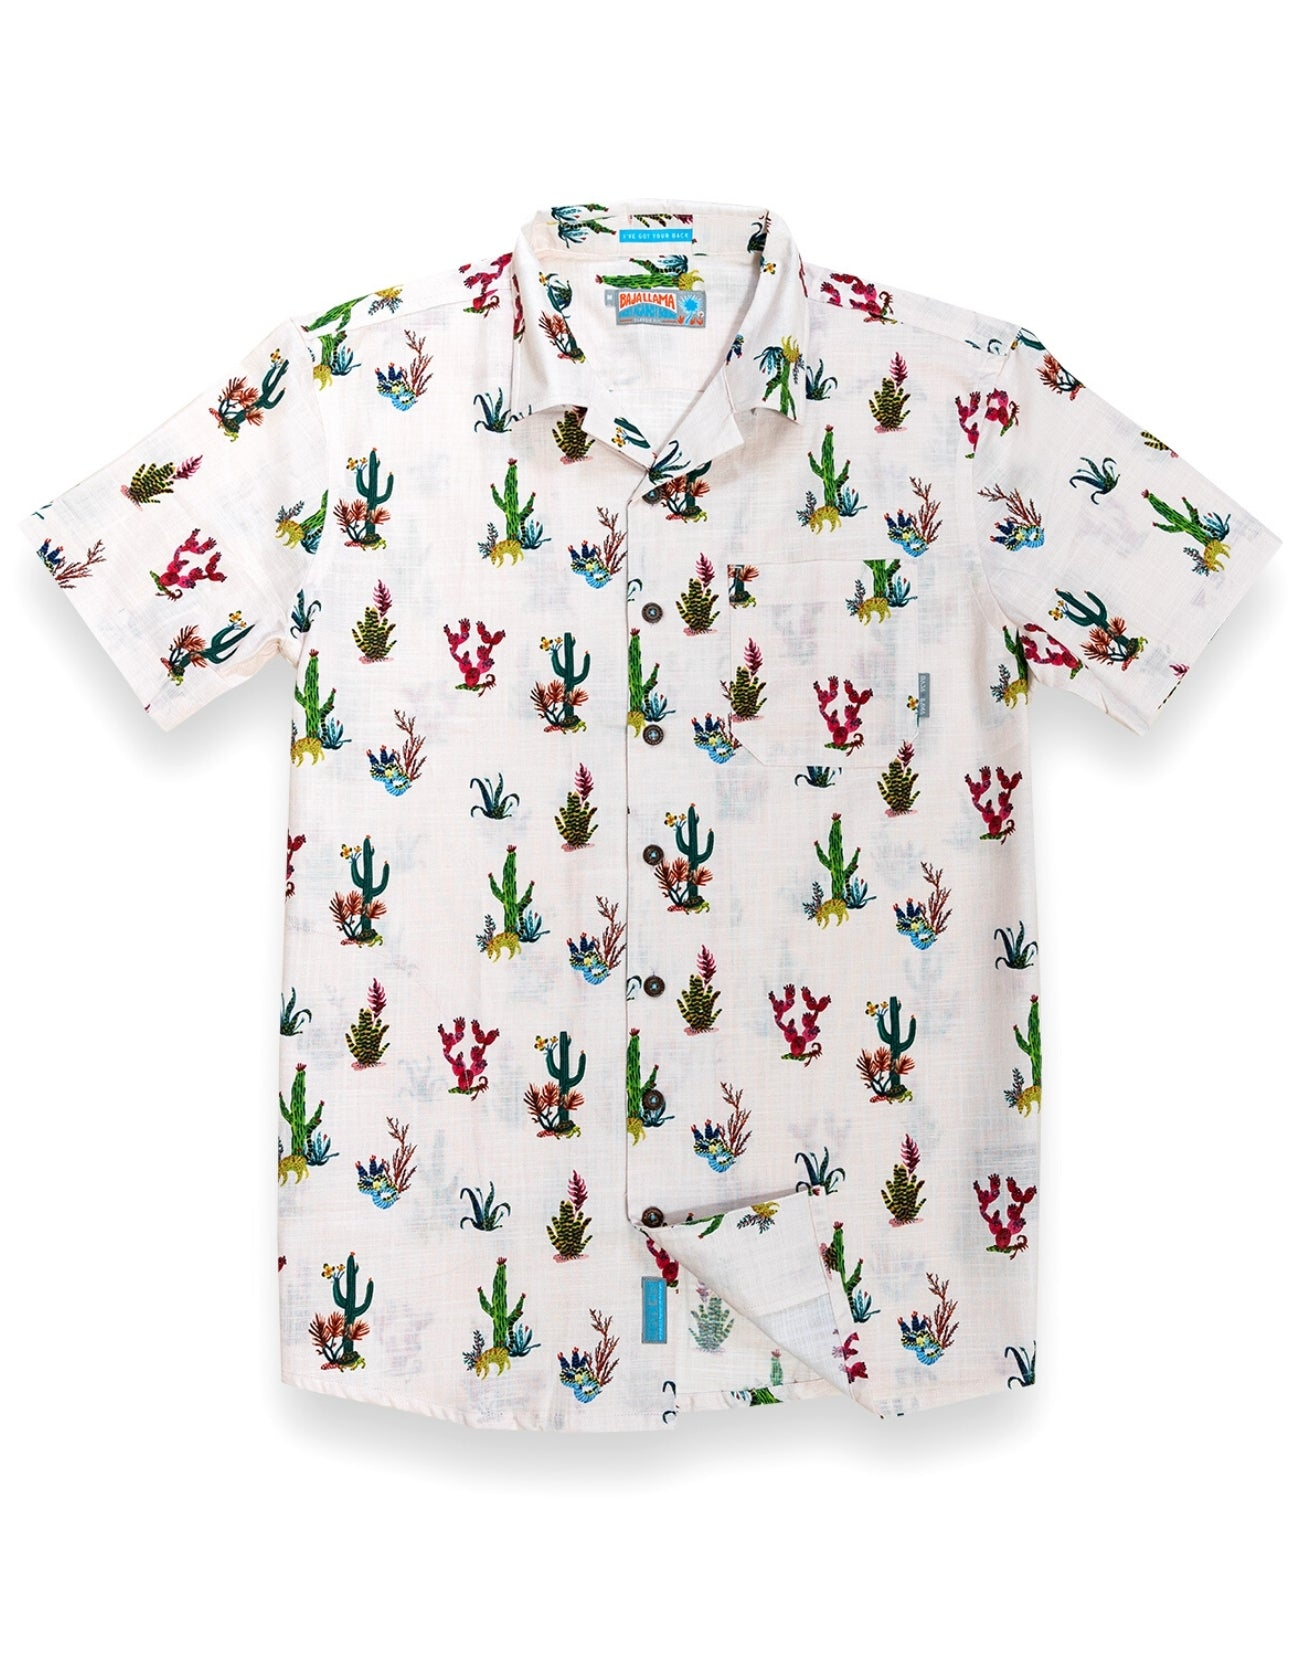 Baja Llama Prickly Sunset Short Sleeve Button Up Light Pink Cactus Shirt